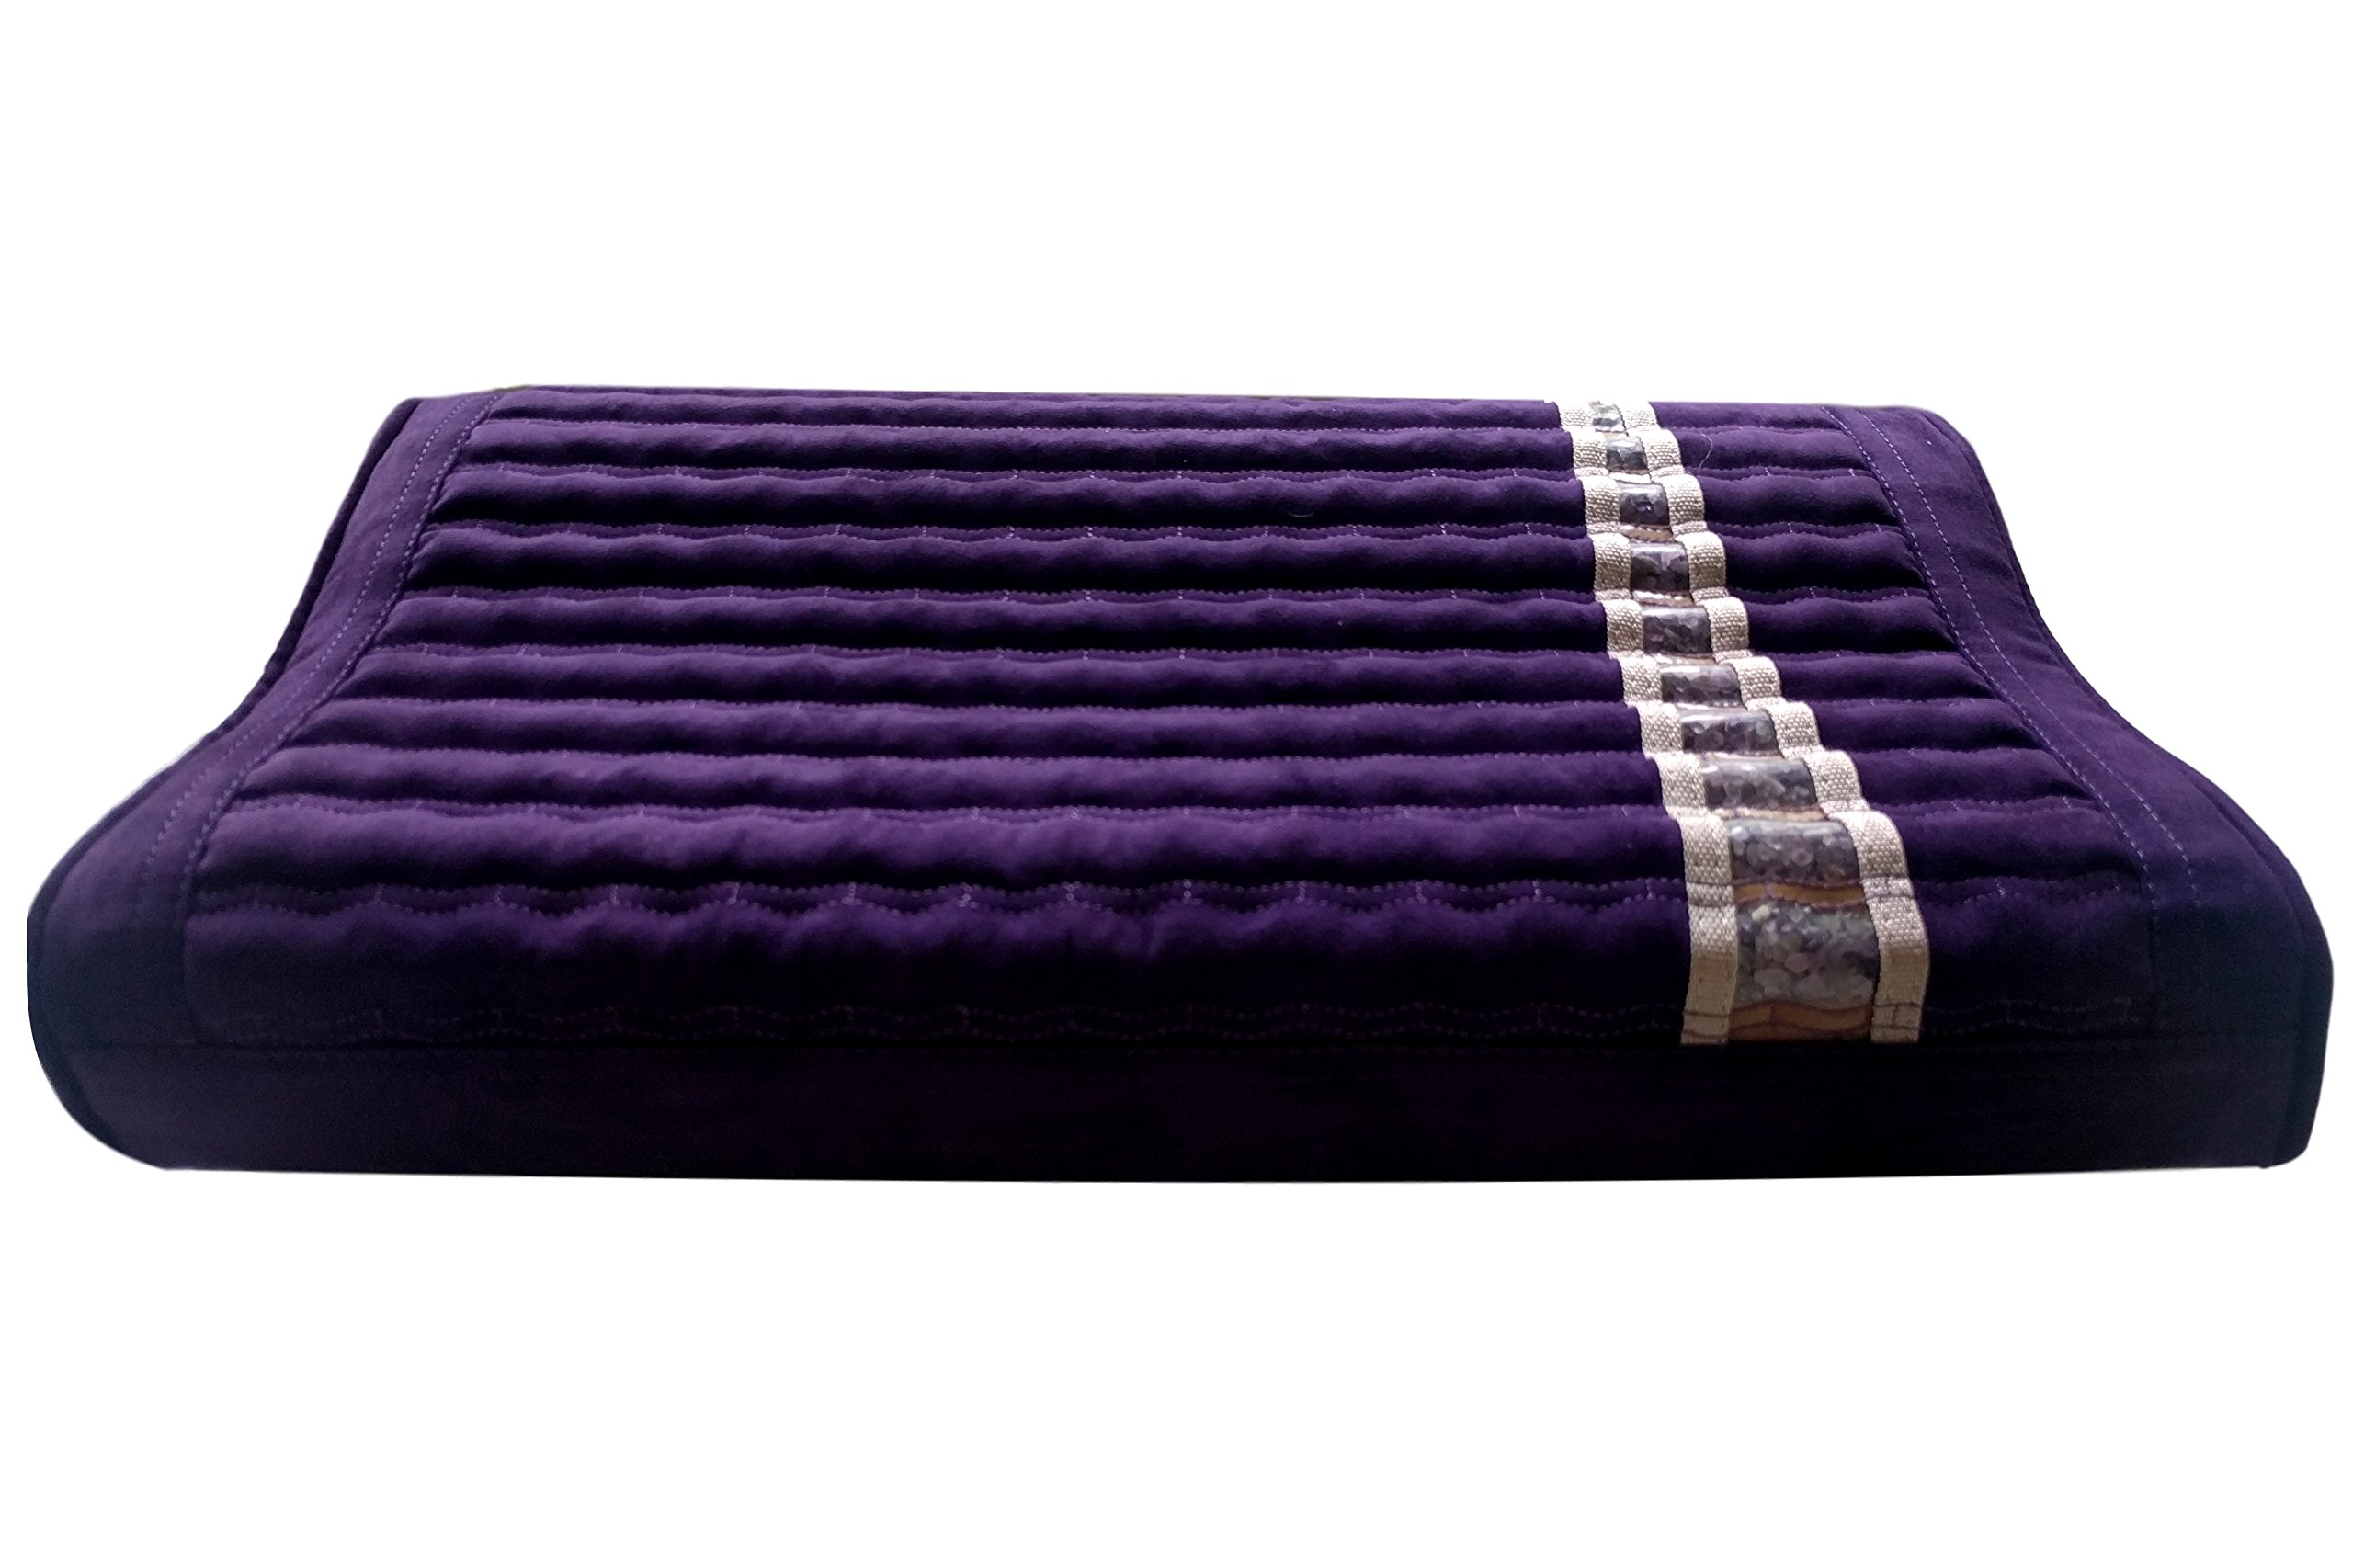 Far Infrared Amethyst Mat Pillow - Emits Negative Ions - Crystal FIR Rays - 100% Natural Amethyst Gemstones - Non Electric - For Headache and Stress Relief - To Sleep Better - GENTLE support - Purple by MediCrystal (Image #6)